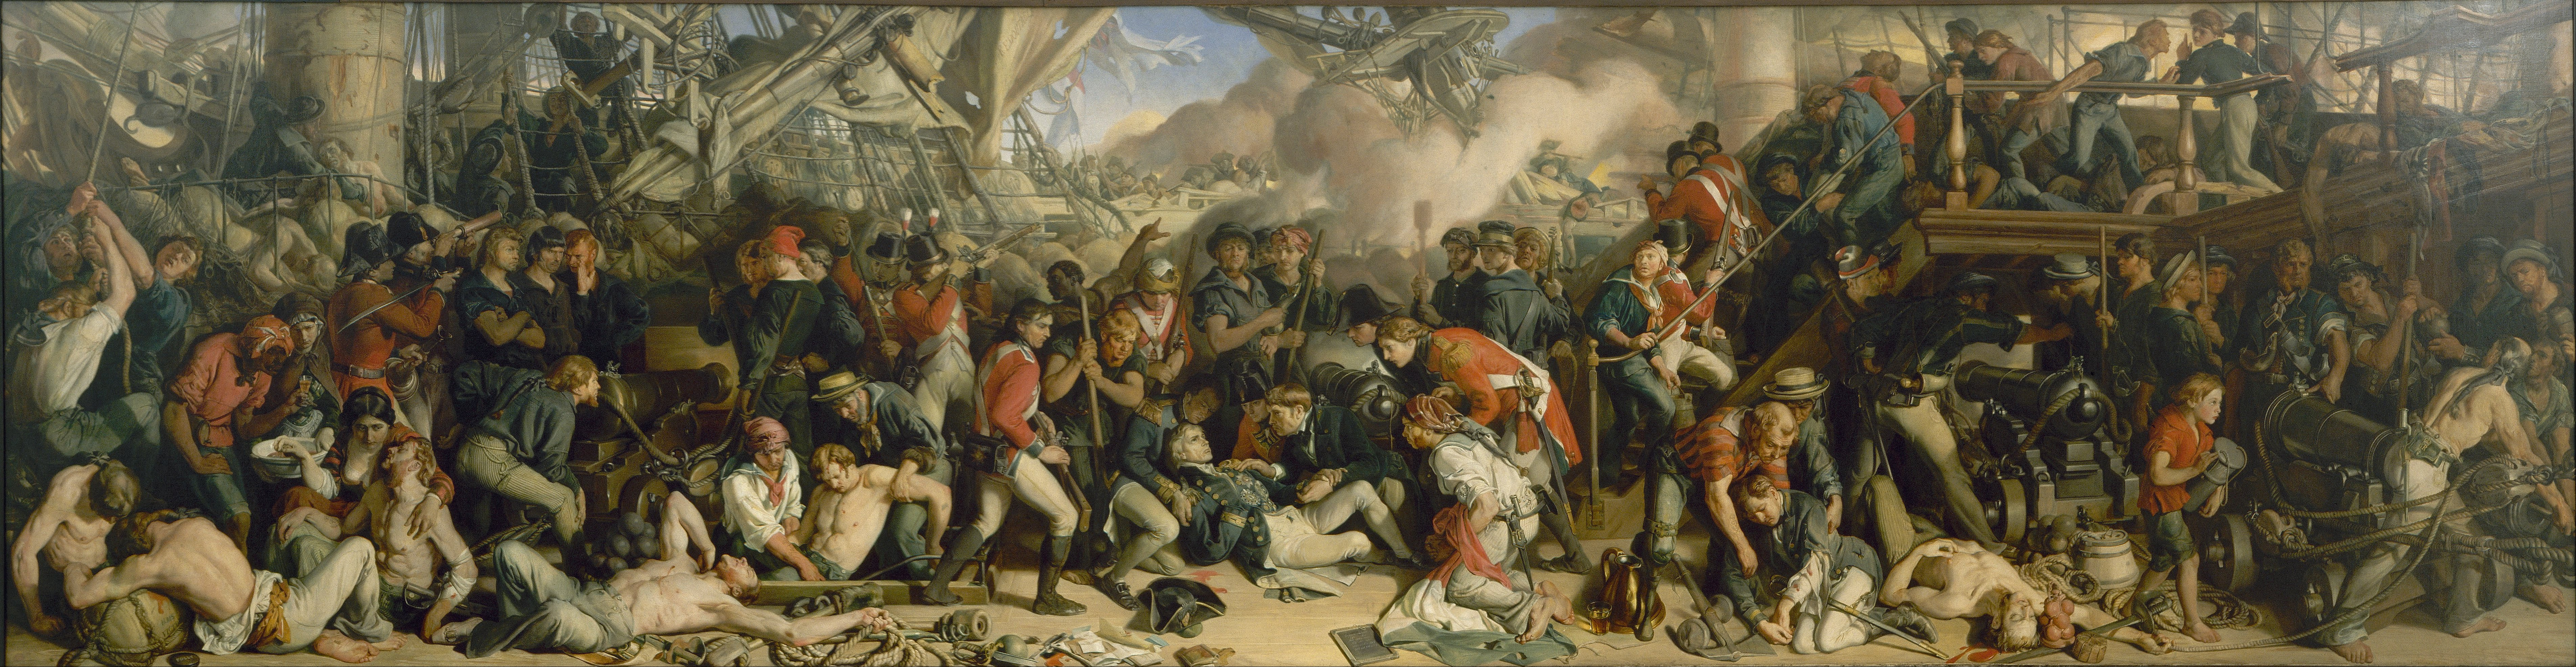 Daniel_Maclise_-_The_Death_of_Nelson_-_G